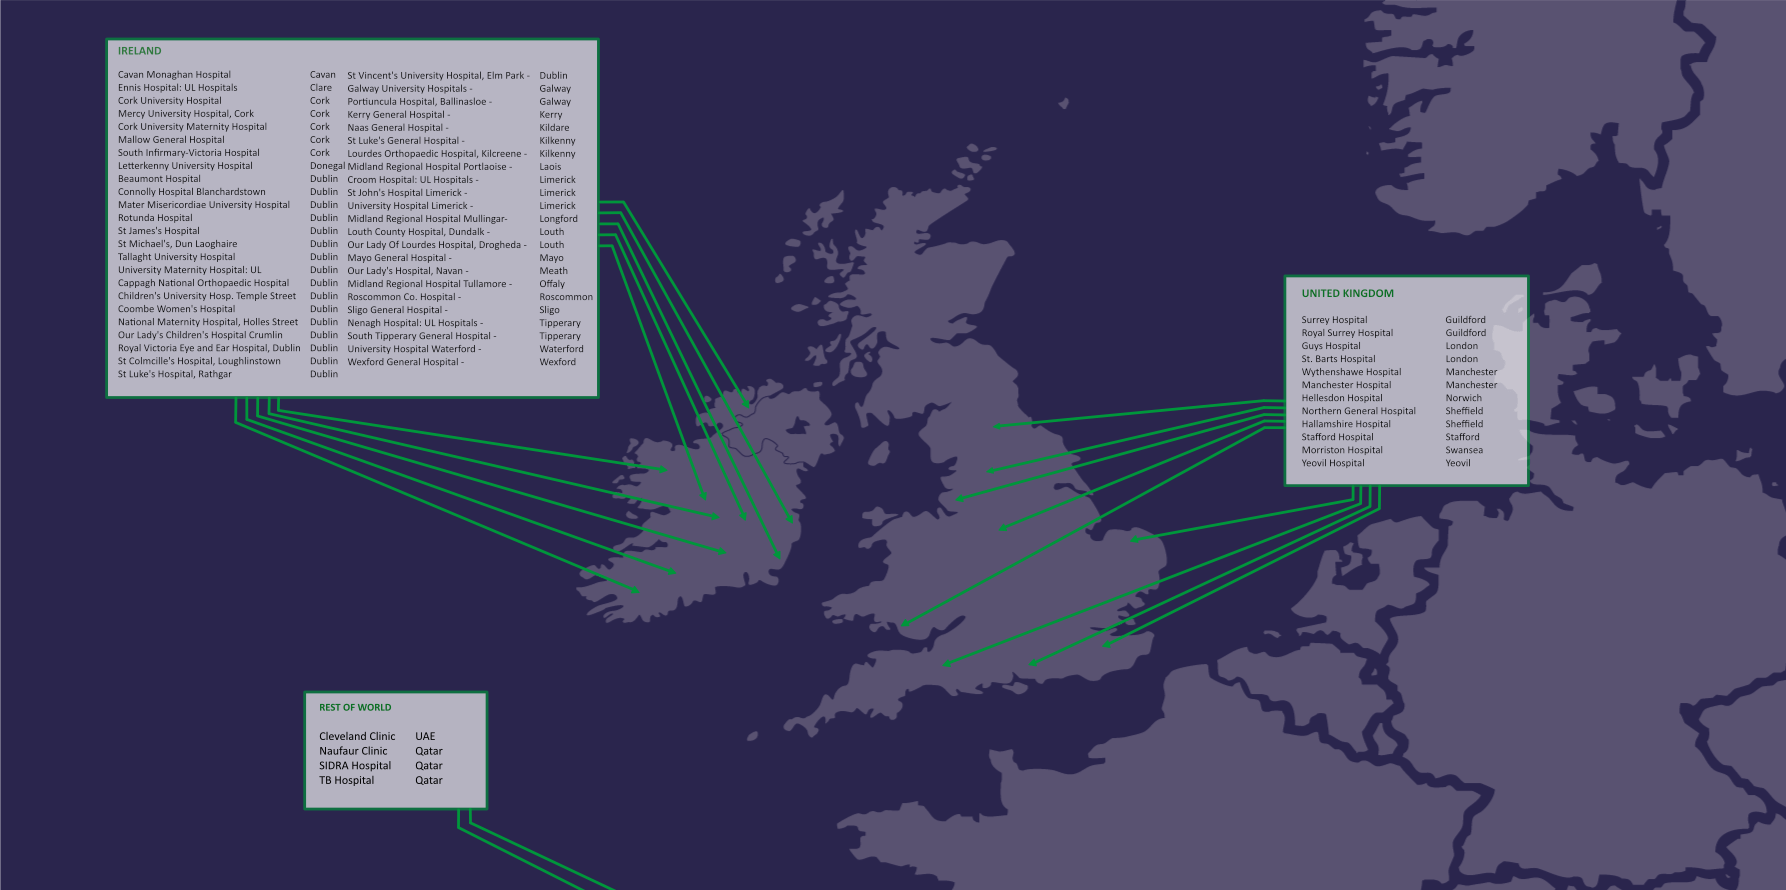 Map showing Kents Healthcare projects in Europe and Middle east